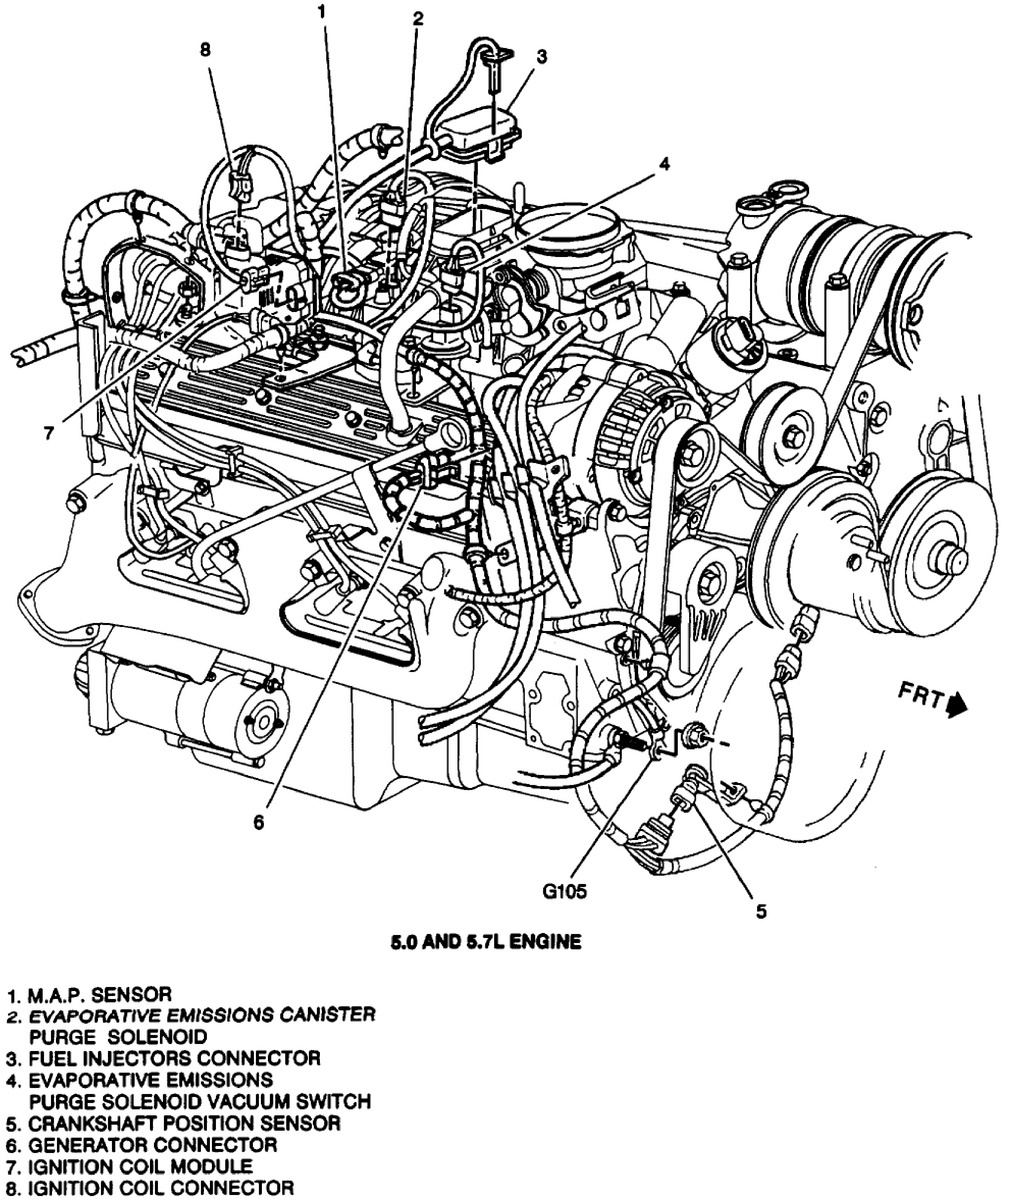 hight resolution of 03 silverado engine diagram wiring diagram blog 2003 chevrolet silverado 1500 engine diagram